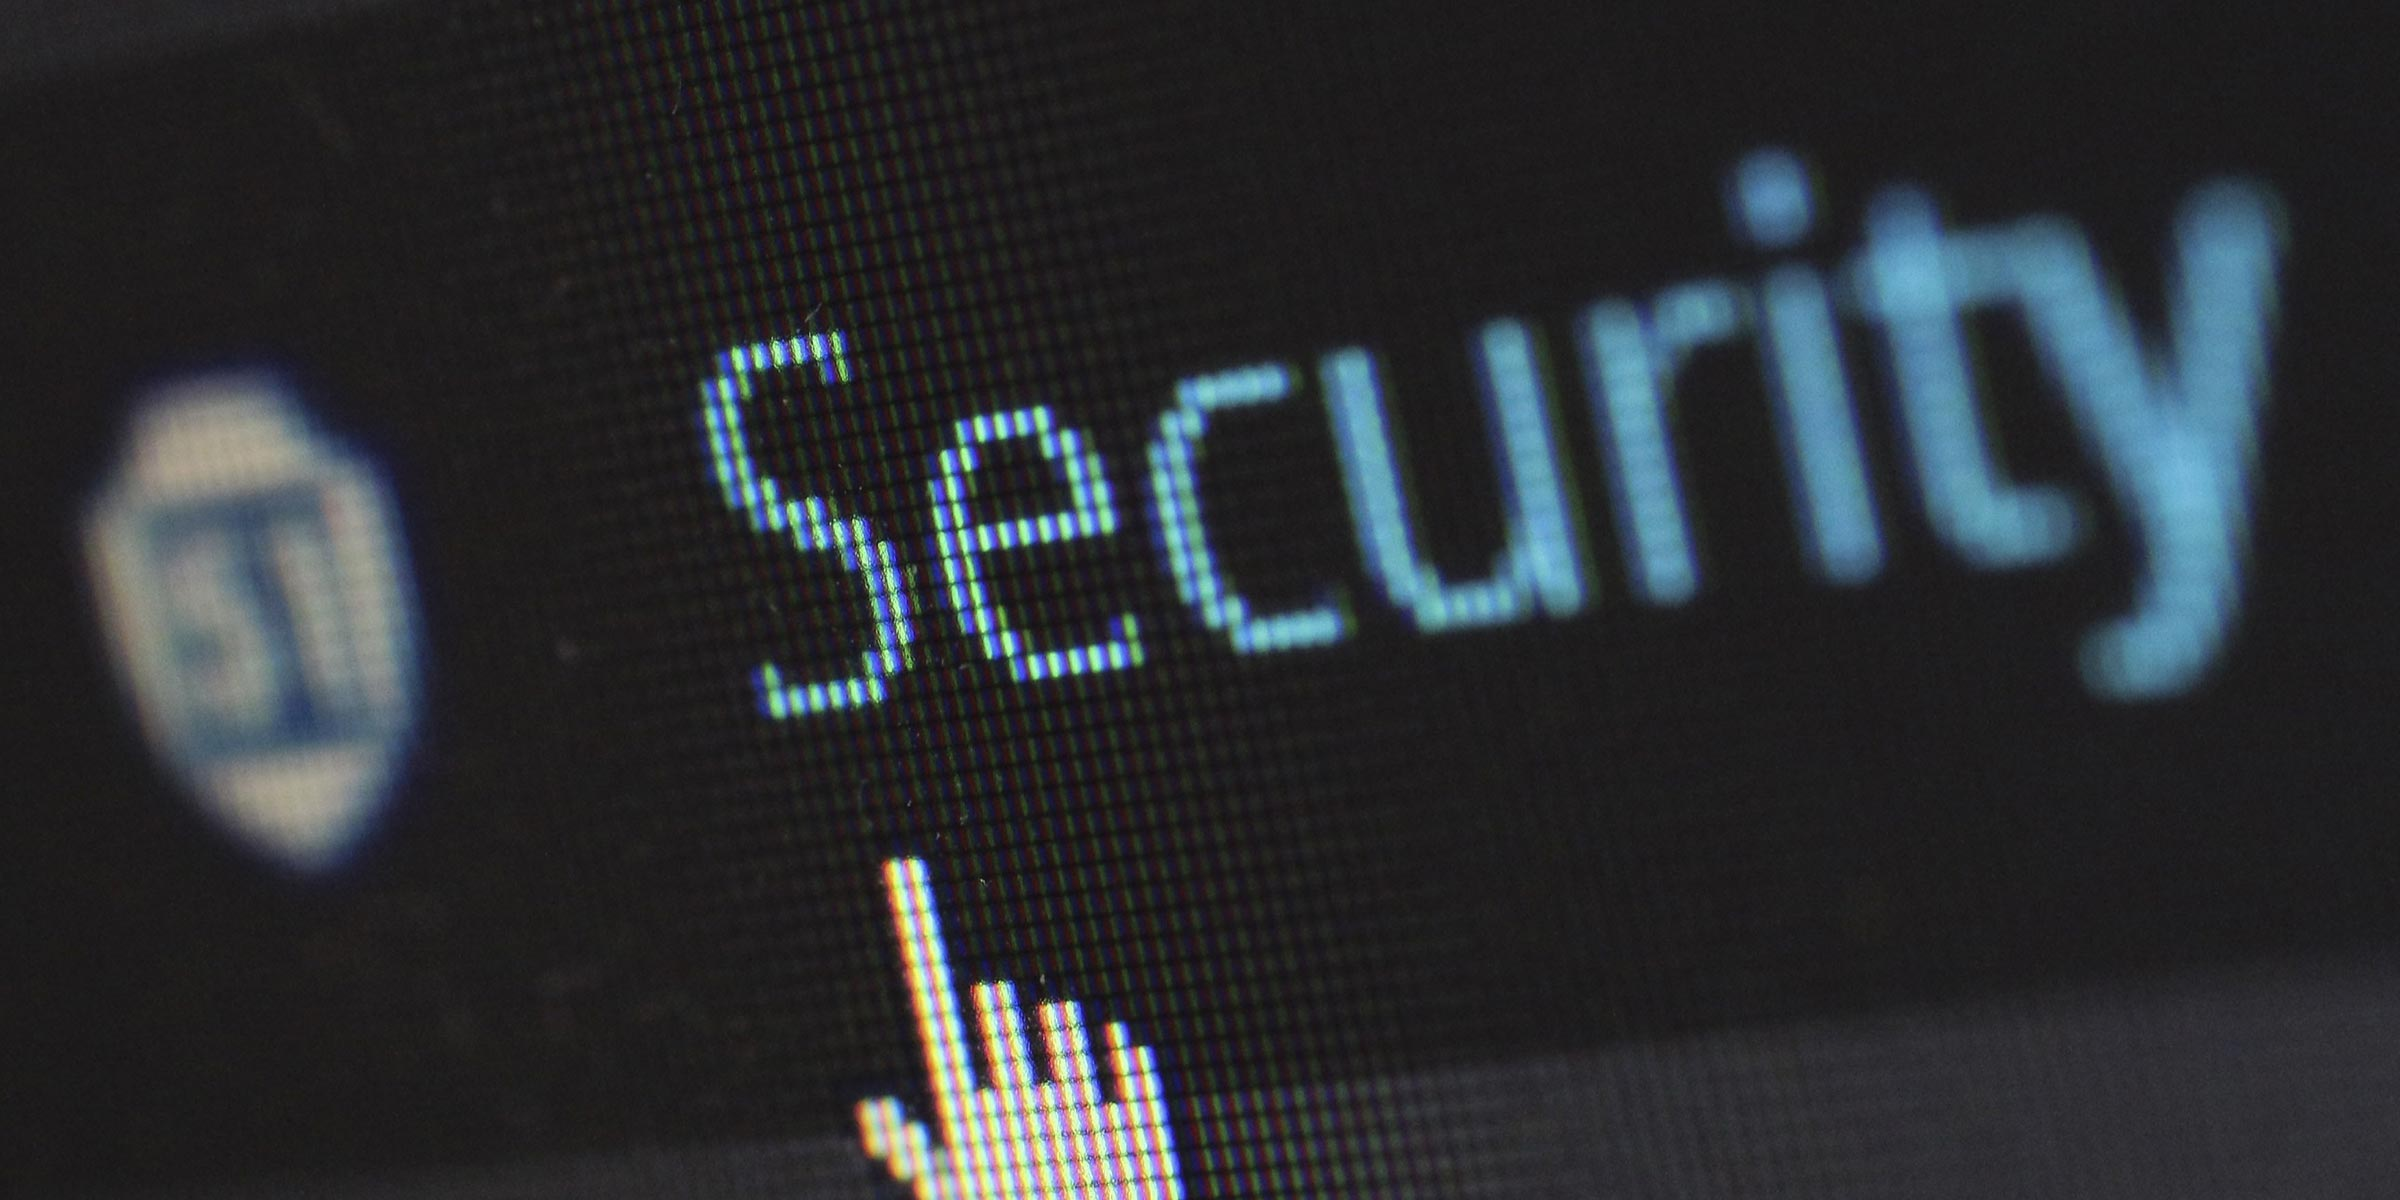 What Can Your Small Business Do Now to Secure Your IT Network? - Featured Image